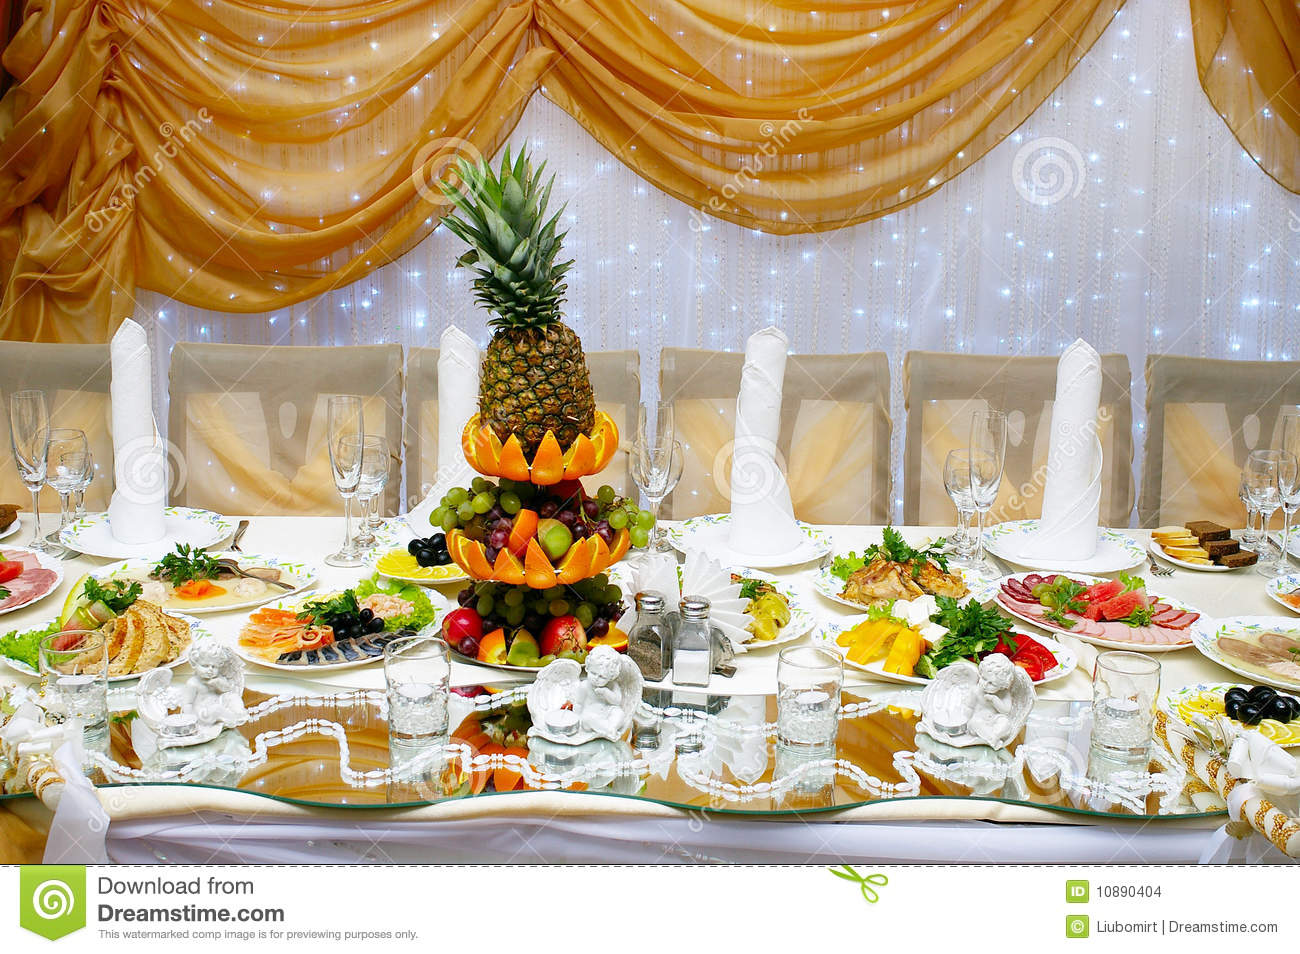 Dinner table setting ideas romantic dinner table setting ideas - Wedding Reception Table With Food Stock Images Image